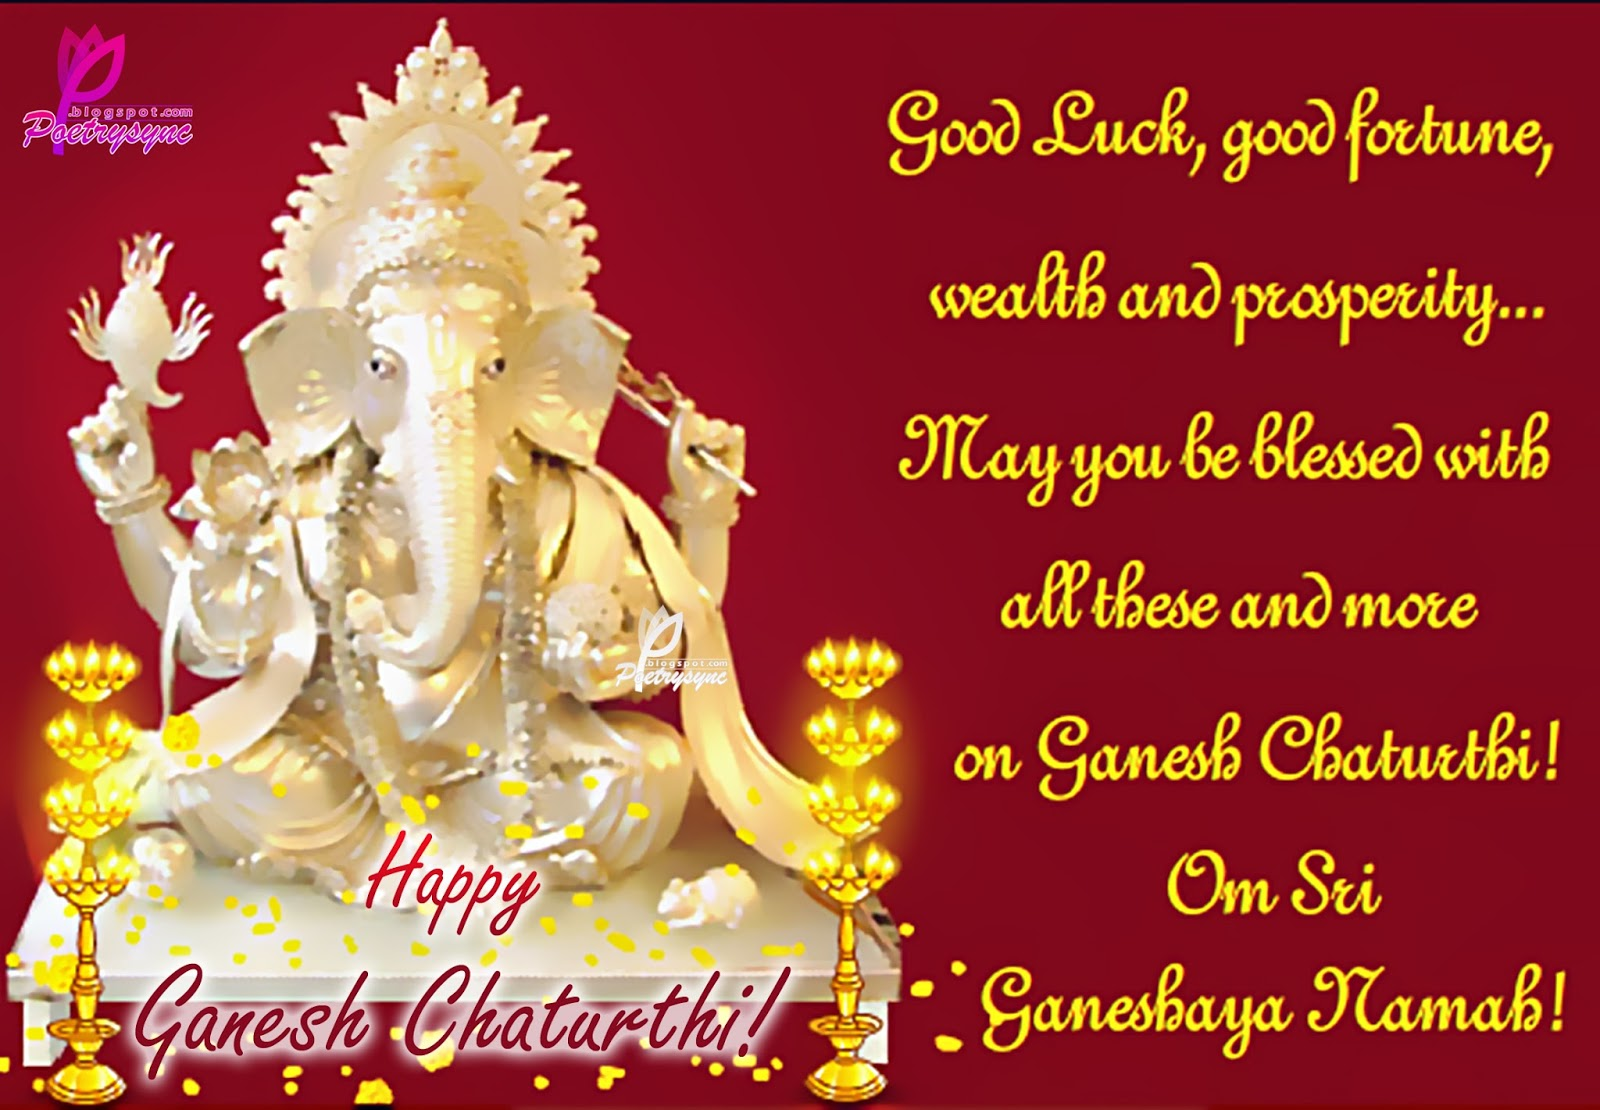 Vinayaka ganesh chaturthi advance wishes greeting card image vinayaka ganesh chaturthi greeting cards ecards images pictures photos in english m4hsunfo